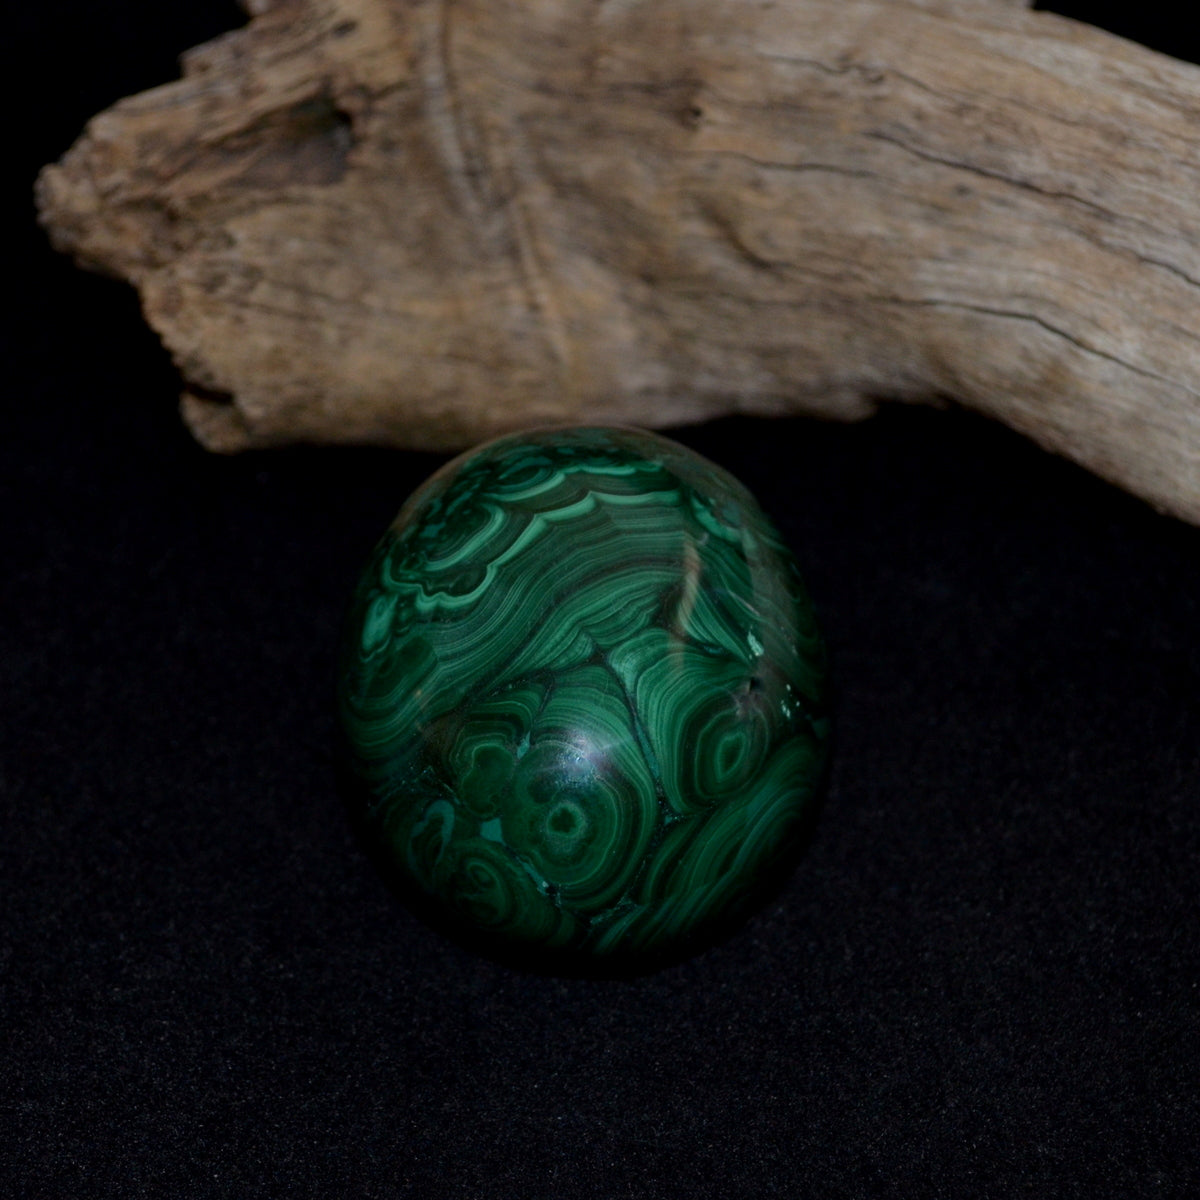 Stunning Large Malachite Egg - Protective Healing Truth - Shop Now at Illiom Crystals - We Have Afterpay